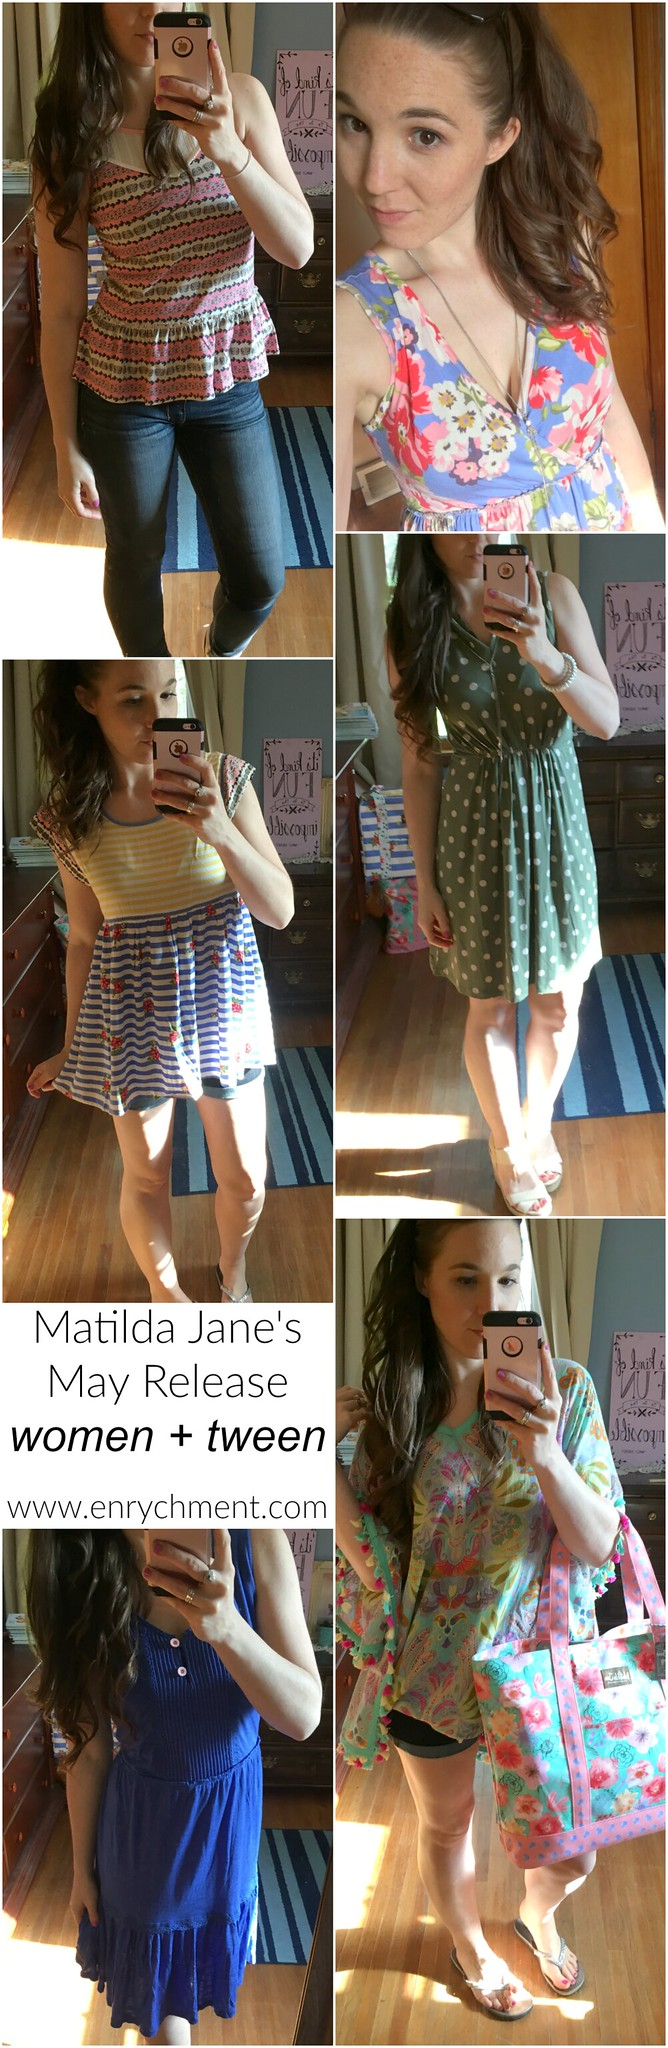 Matilda Jane's Spring 2017 May Release | Women and Tween IRL pics on www.enrychment.com